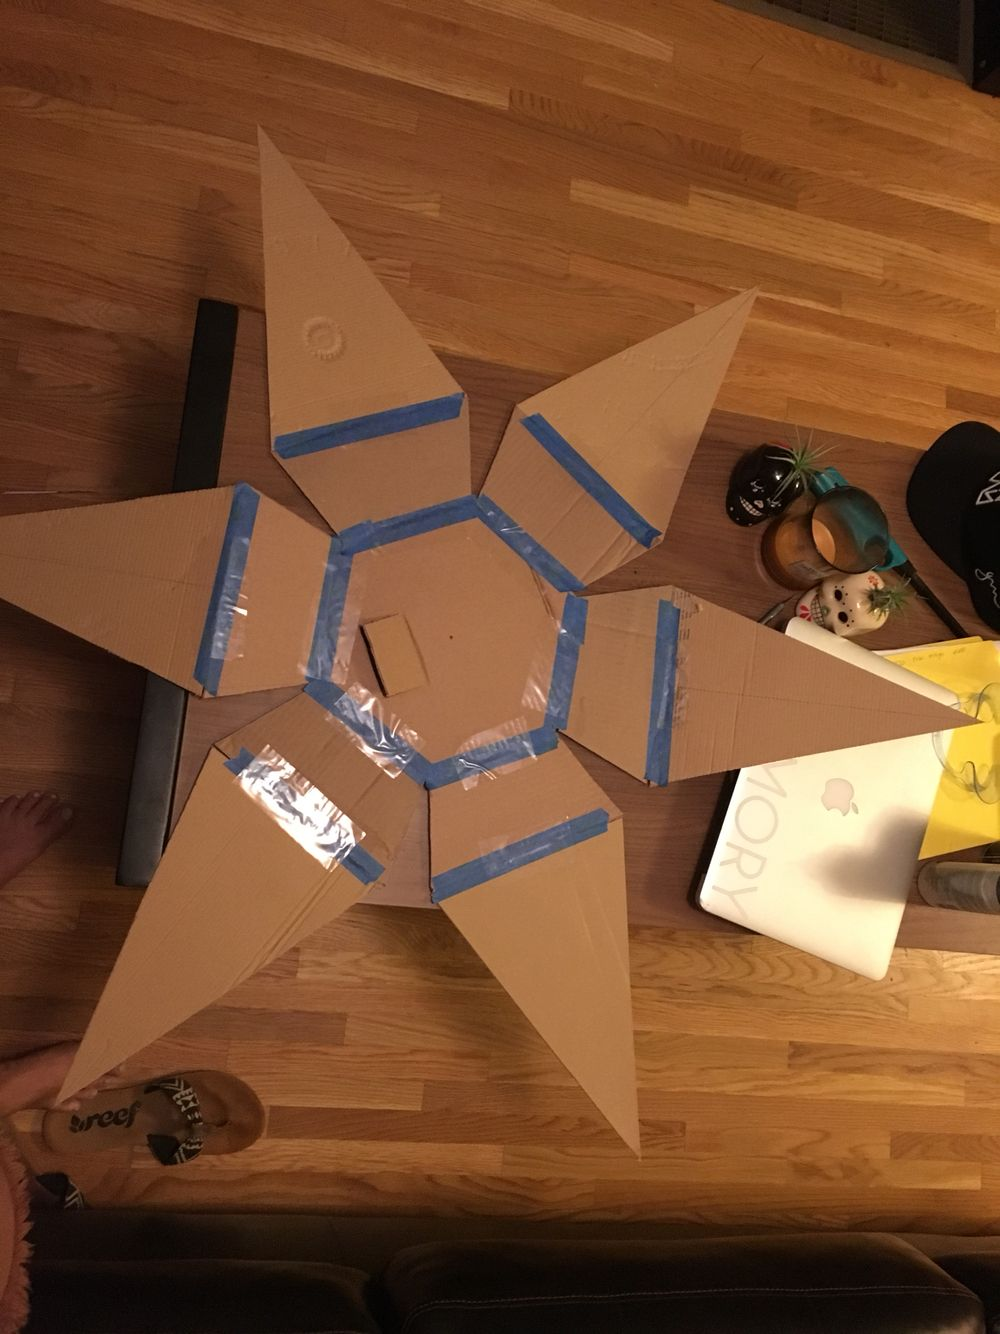 Behind the scenes of piñata building... I love that so many awesome tutorials for these types of projects are readily available online!  It's so fun to try new things!